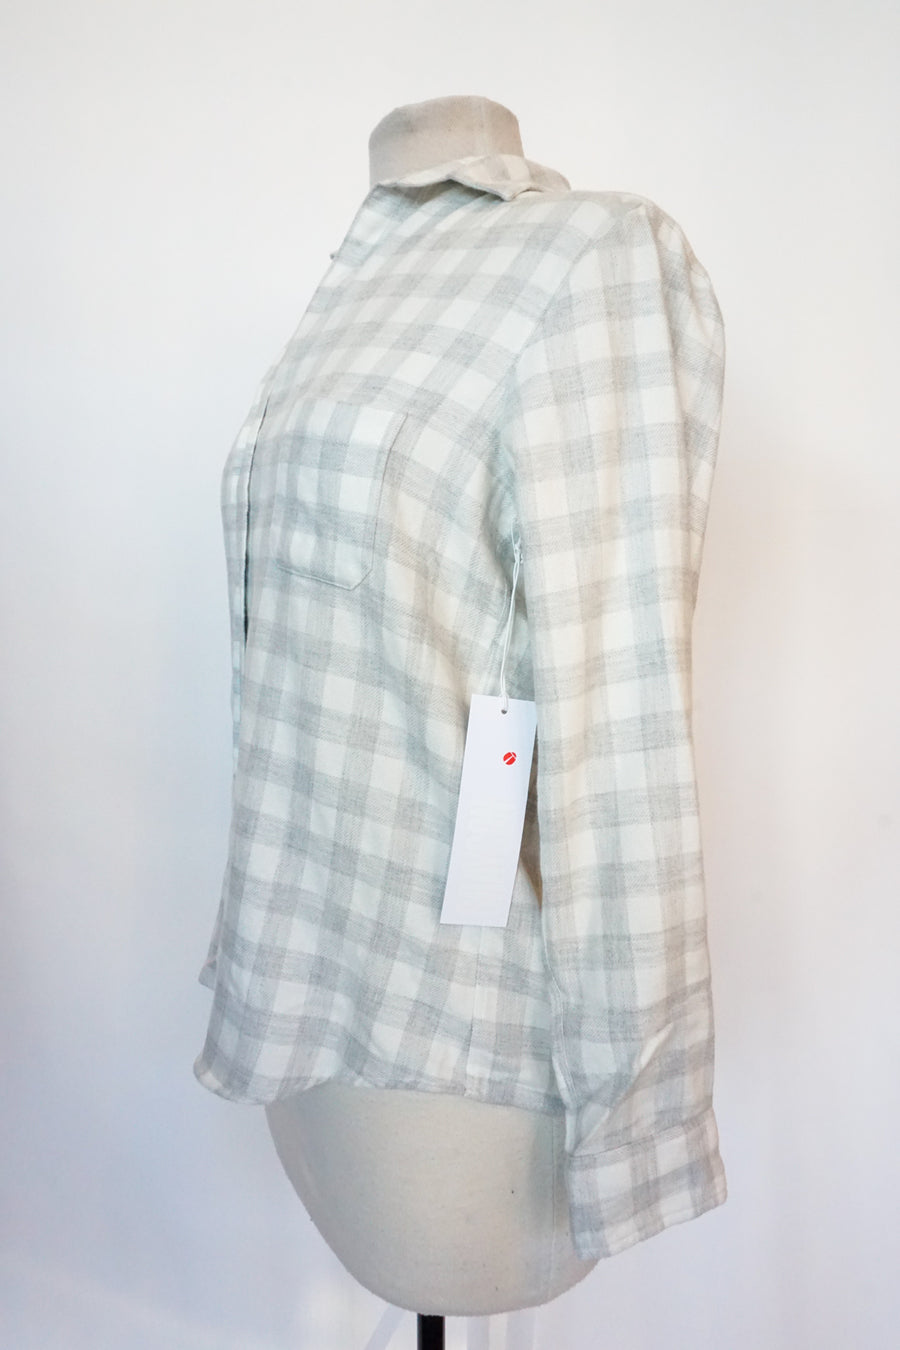 Grayson - Gray Gingham Flannel